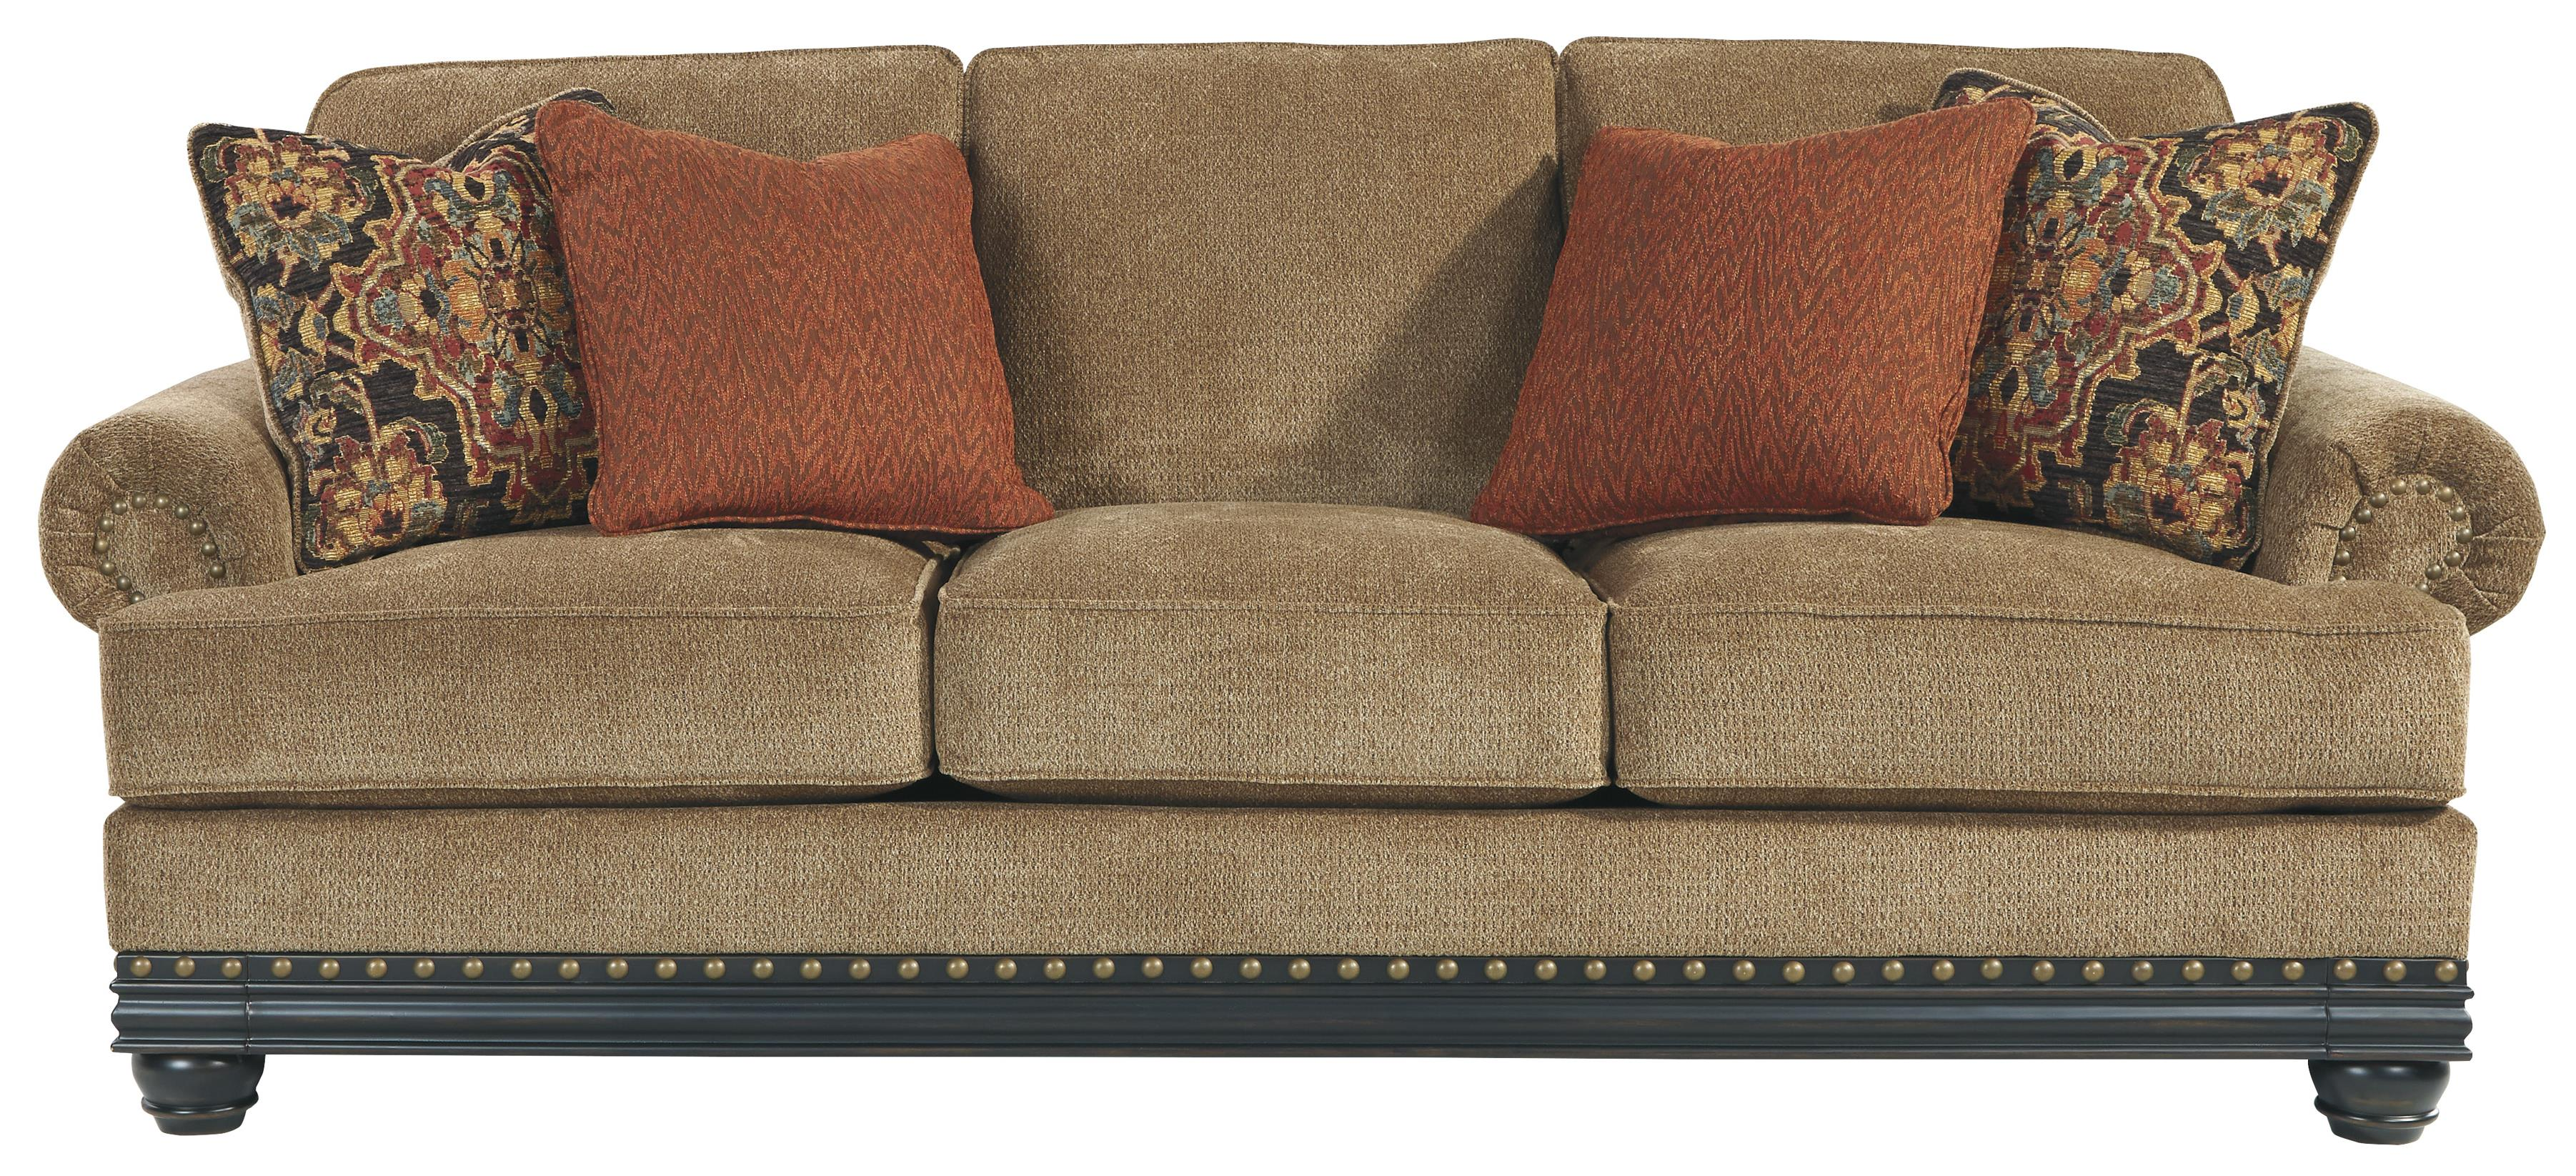 Signature Design by Ashley Elnora Sofa - Item Number: 9370238